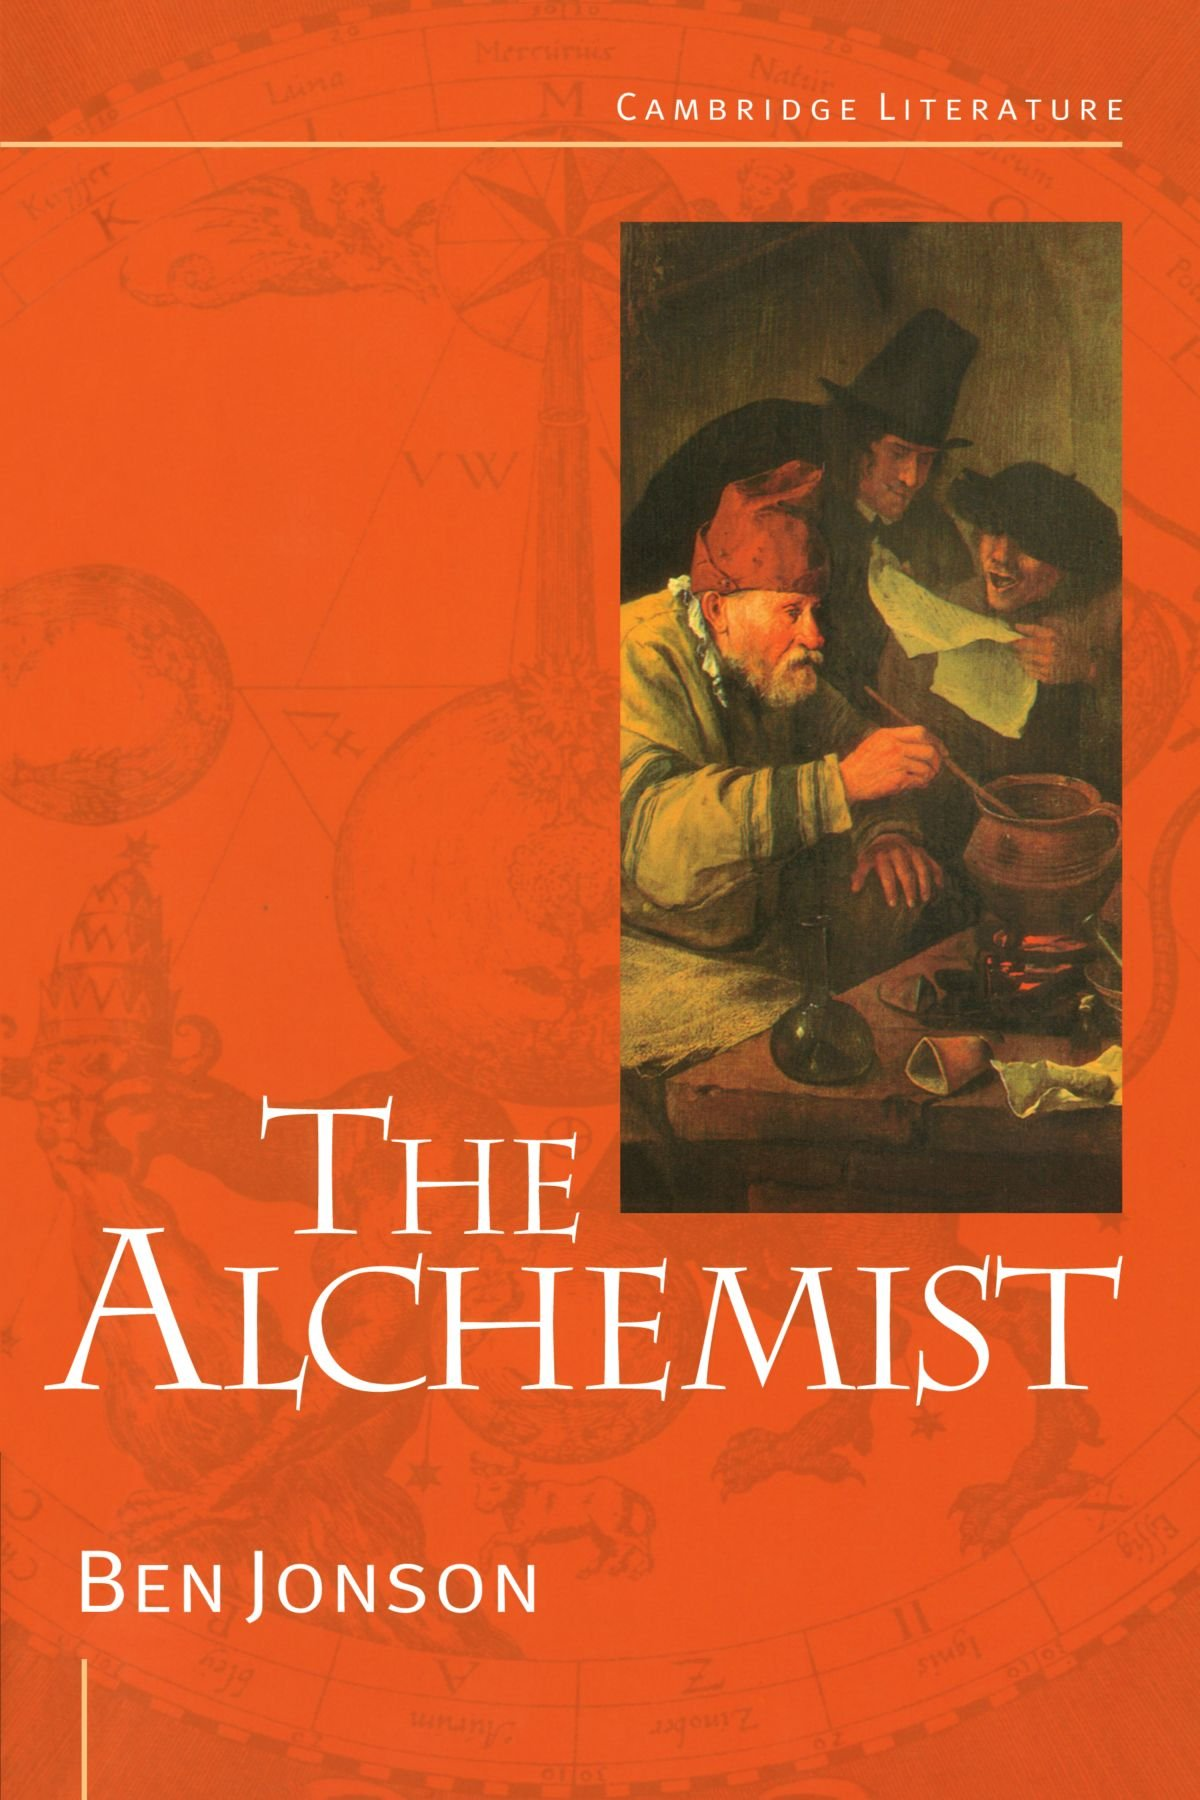 com the alchemist cambridge literature 9780521485838  com the alchemist cambridge literature 9780521485838 ben jonson brian woolland books